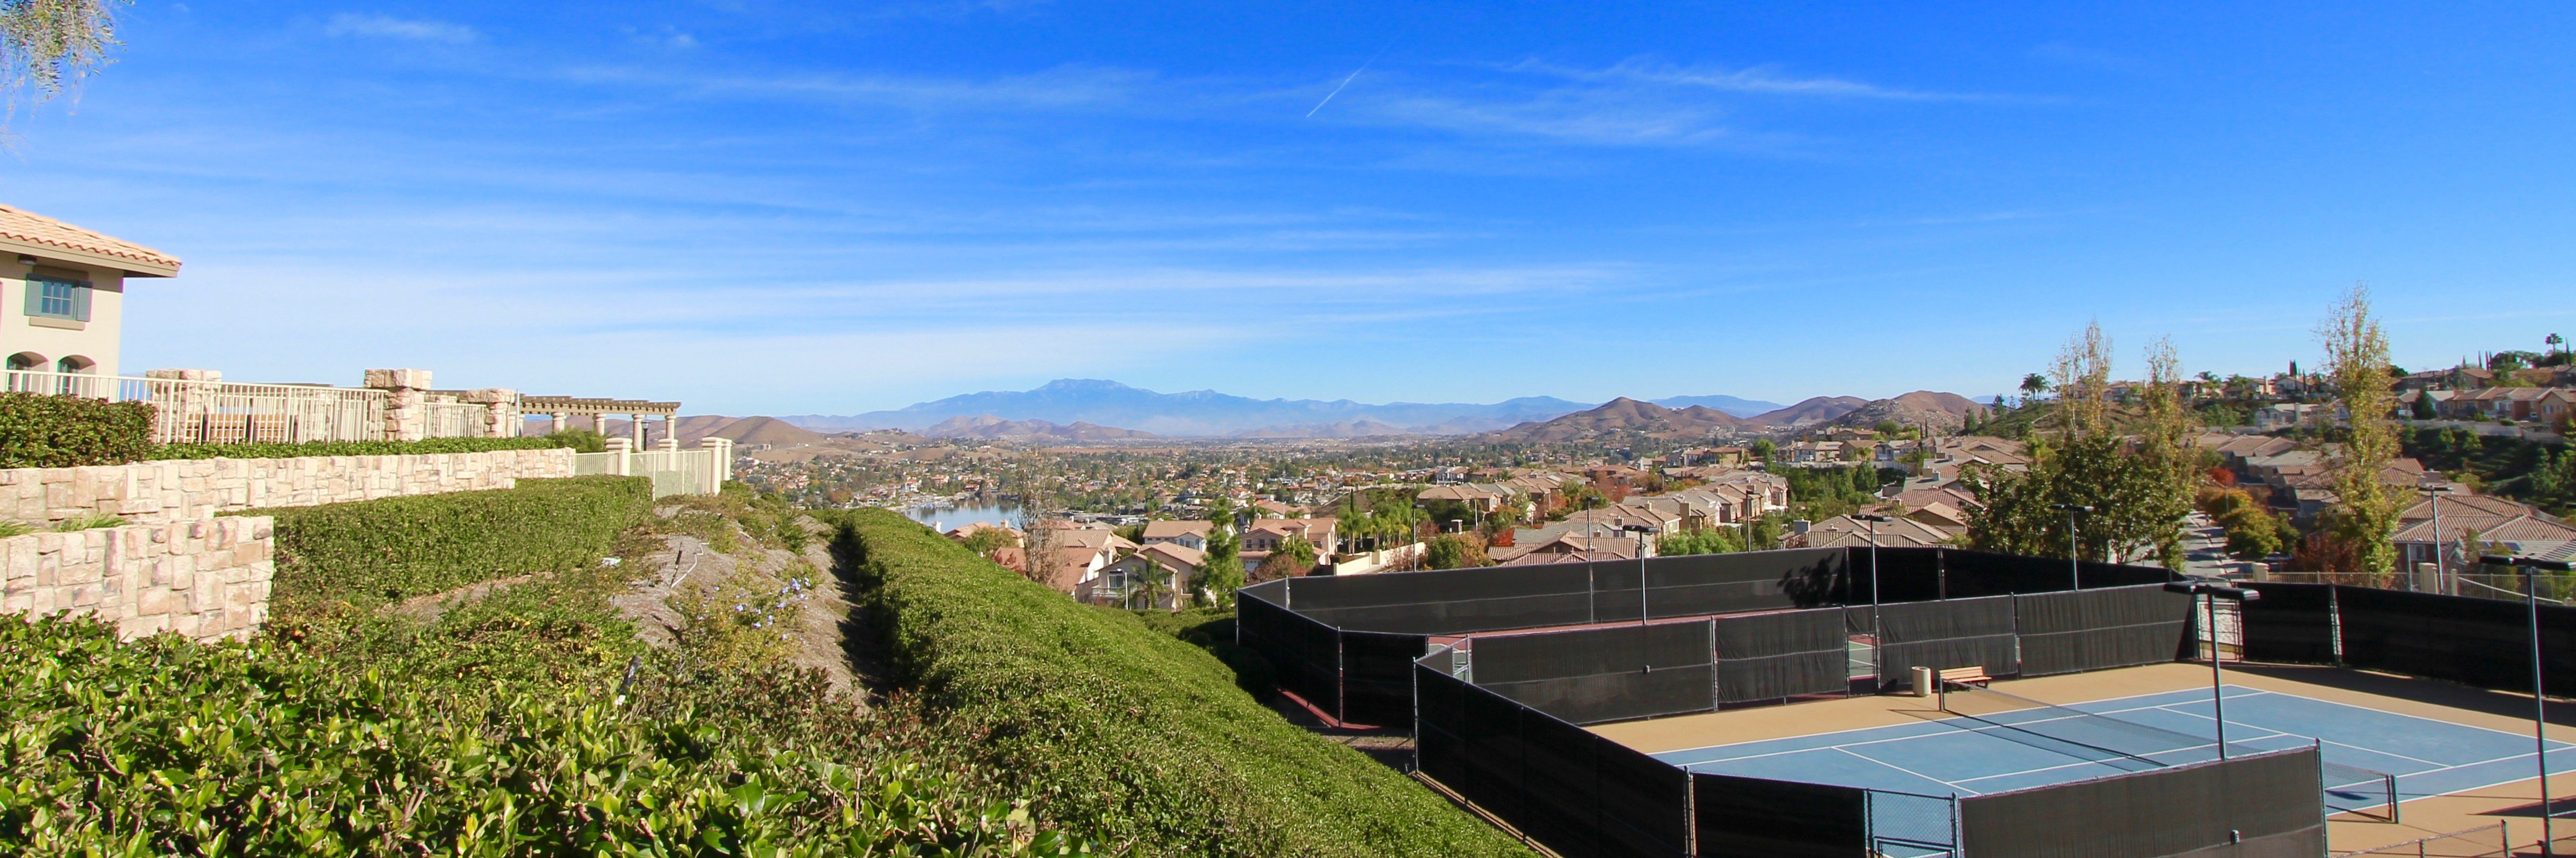 Tuscany Hills is a community located in Lake Elsinore CA